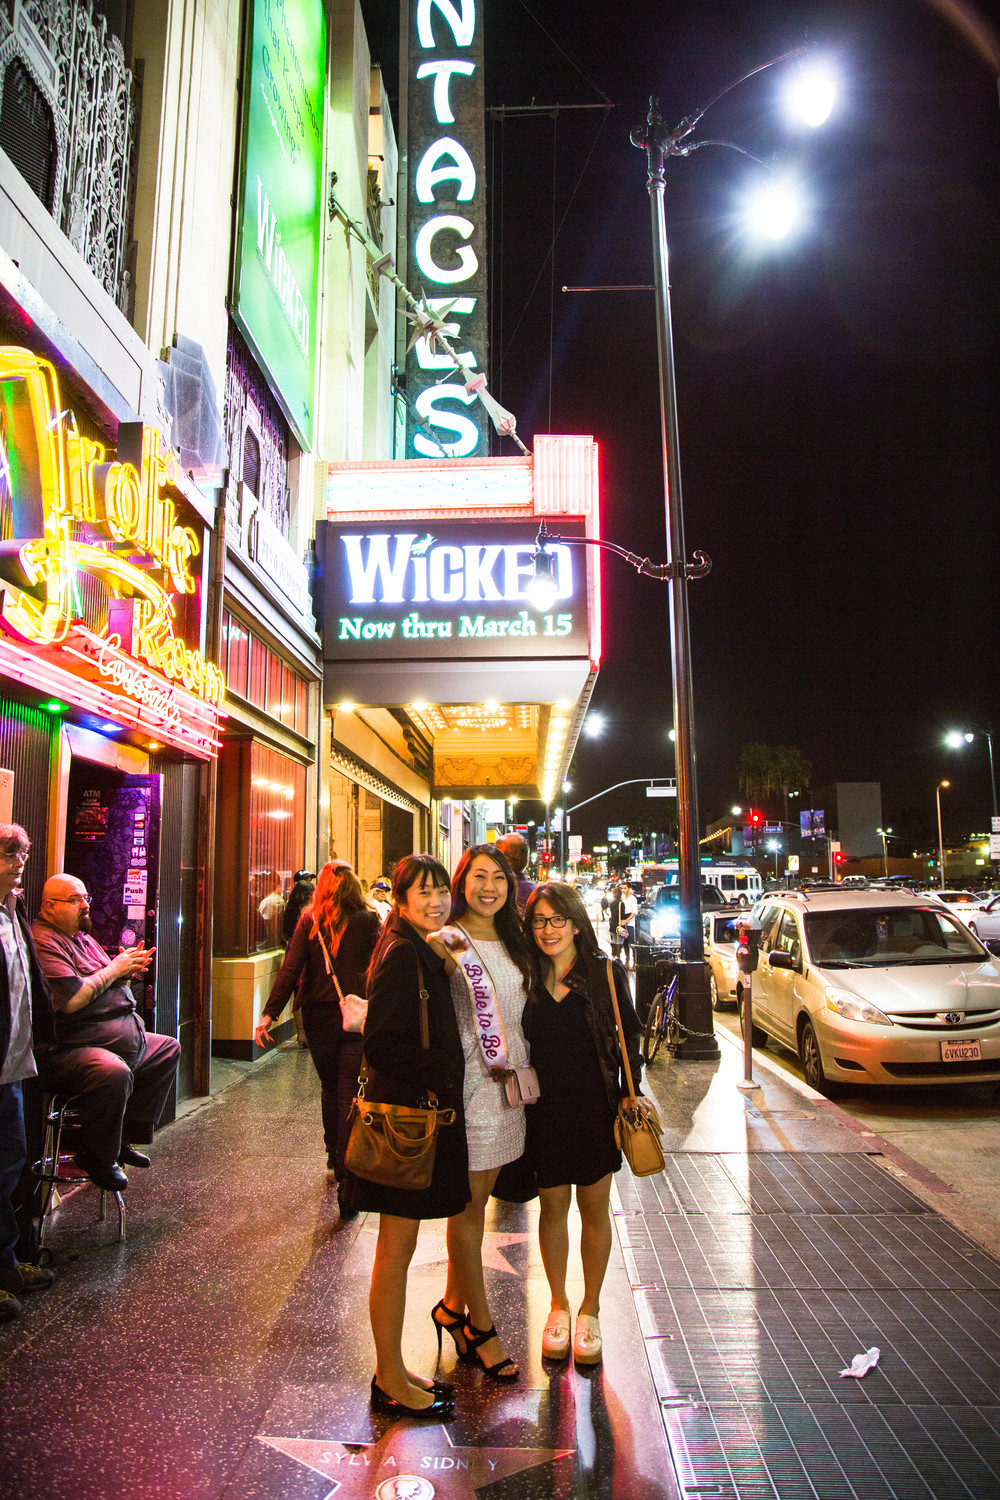 Wicked at Pantages Theatre